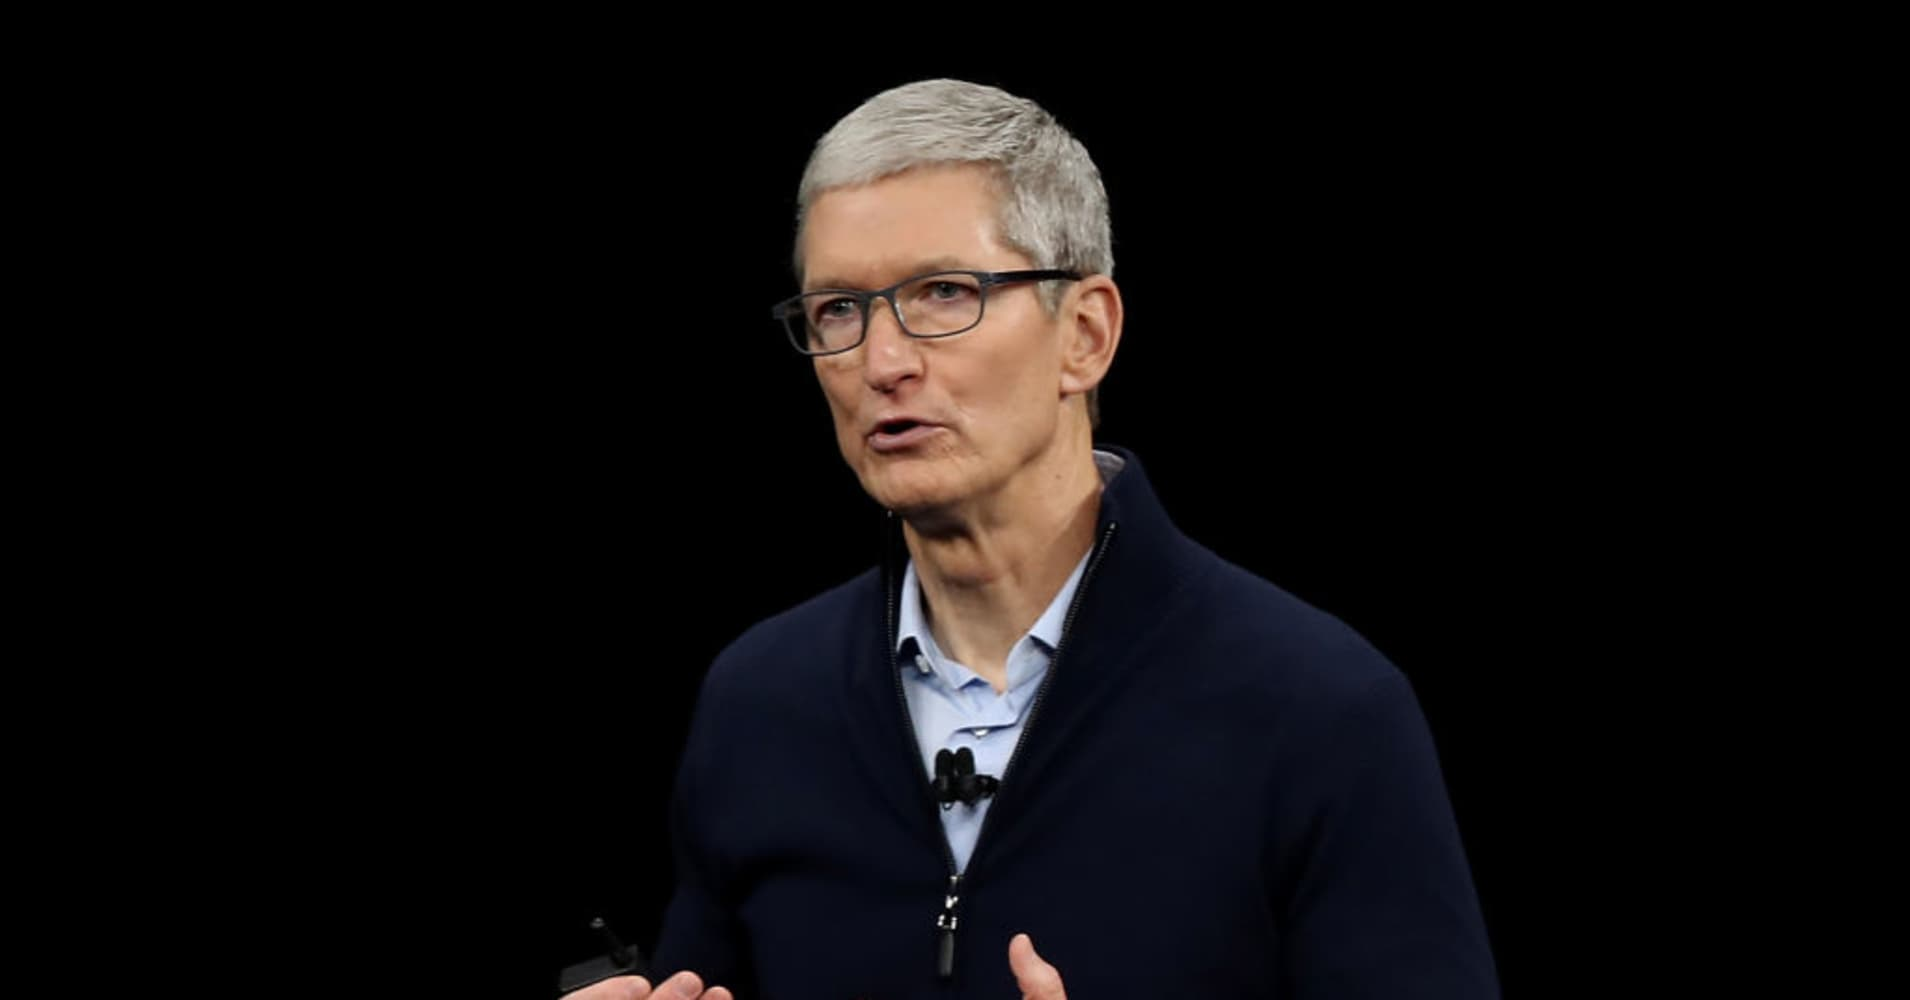 Apple CEO Tim Cook: Learn to code, it's more important than English as a second language